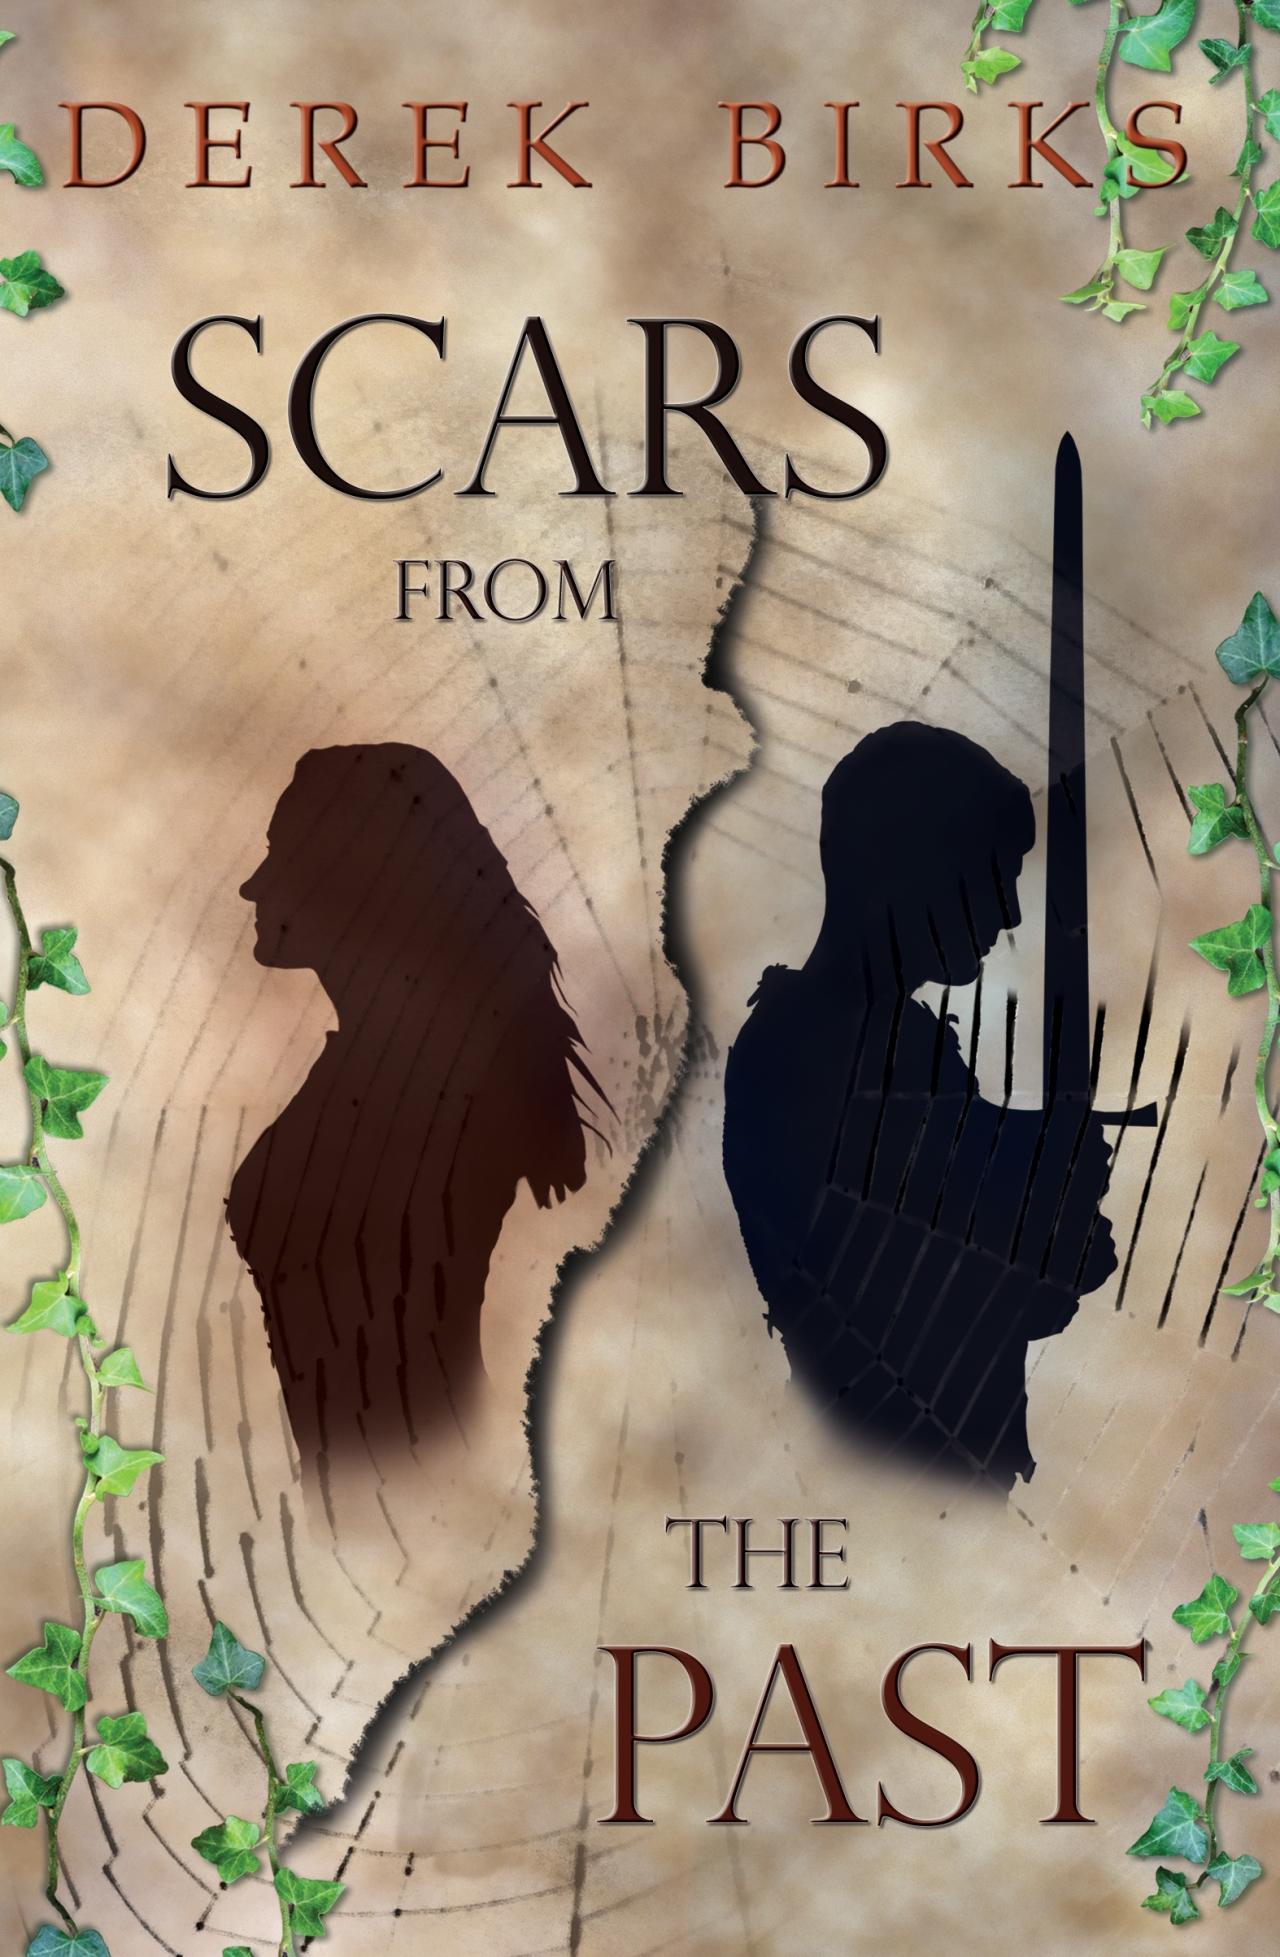 Scars from the Past - Derek Birks